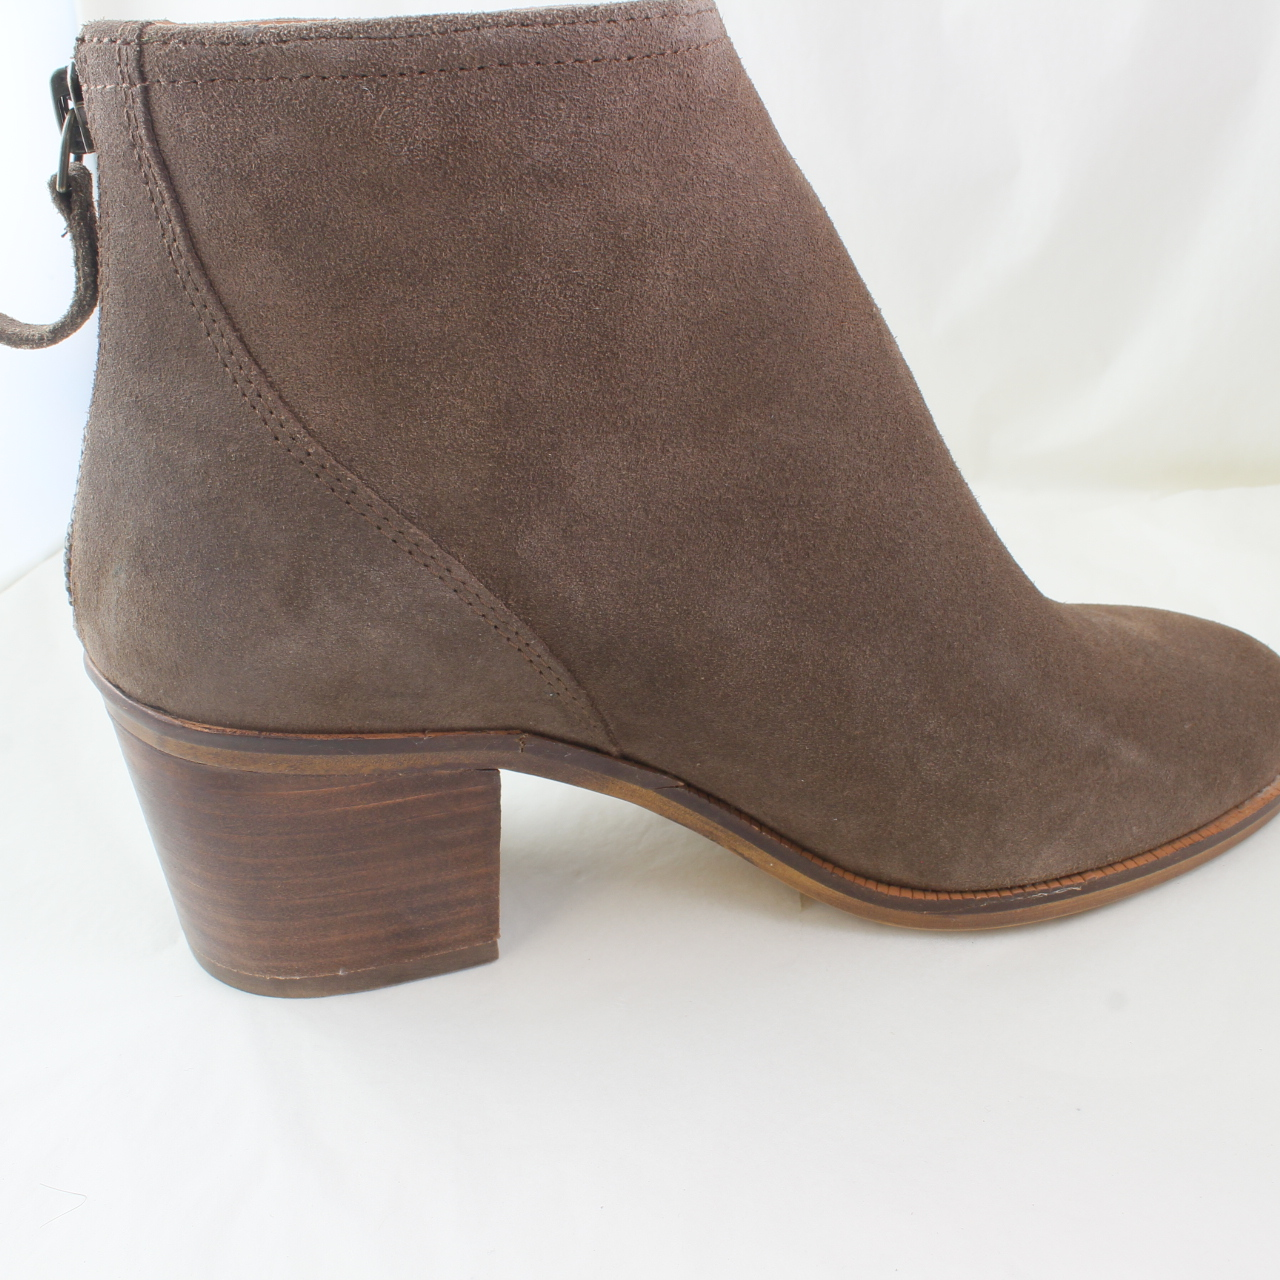 e7f265e5aba69 Sentinel Womens Office Brown Suede Zip Ankle Boots Size UK 3  Ex-Display